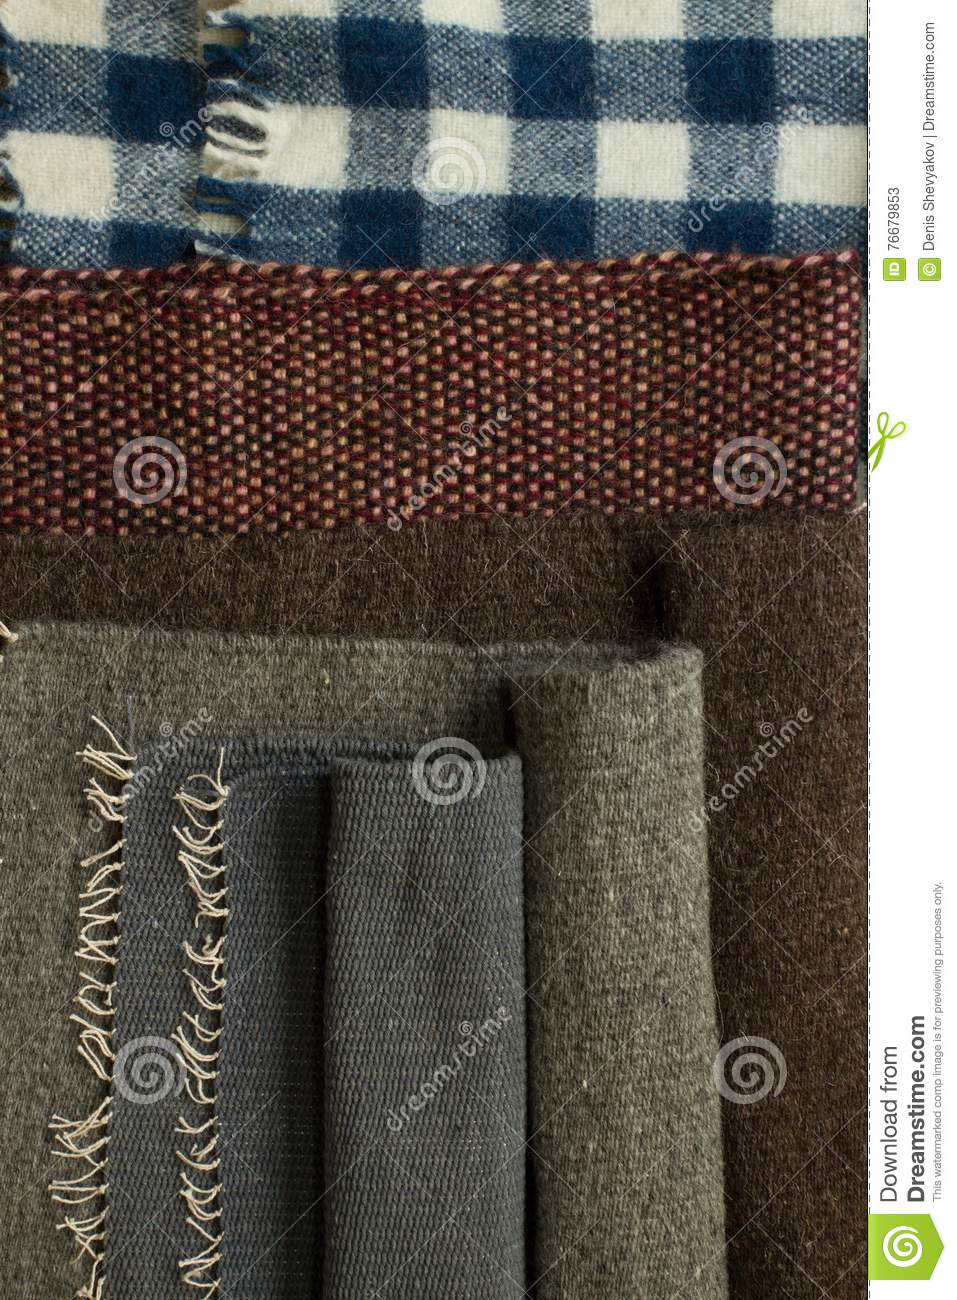 Mats For Yoga And Meditation Stock Image Image Of Warm Thread 76679853